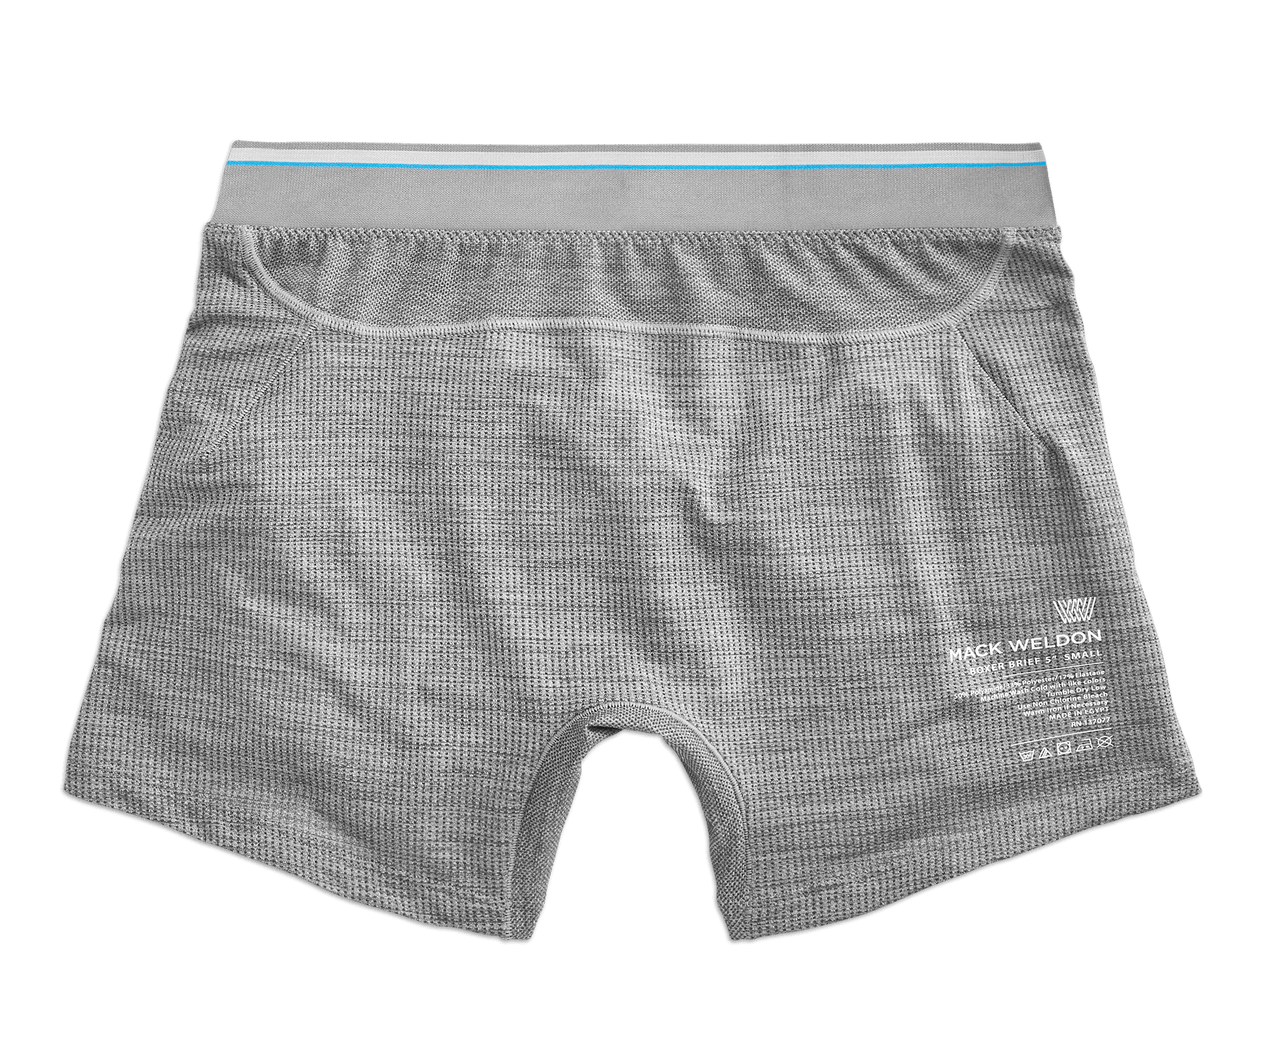 Acexy Mens Trunks Underwear Pack of 4 Shorts Gents Ultra Soft